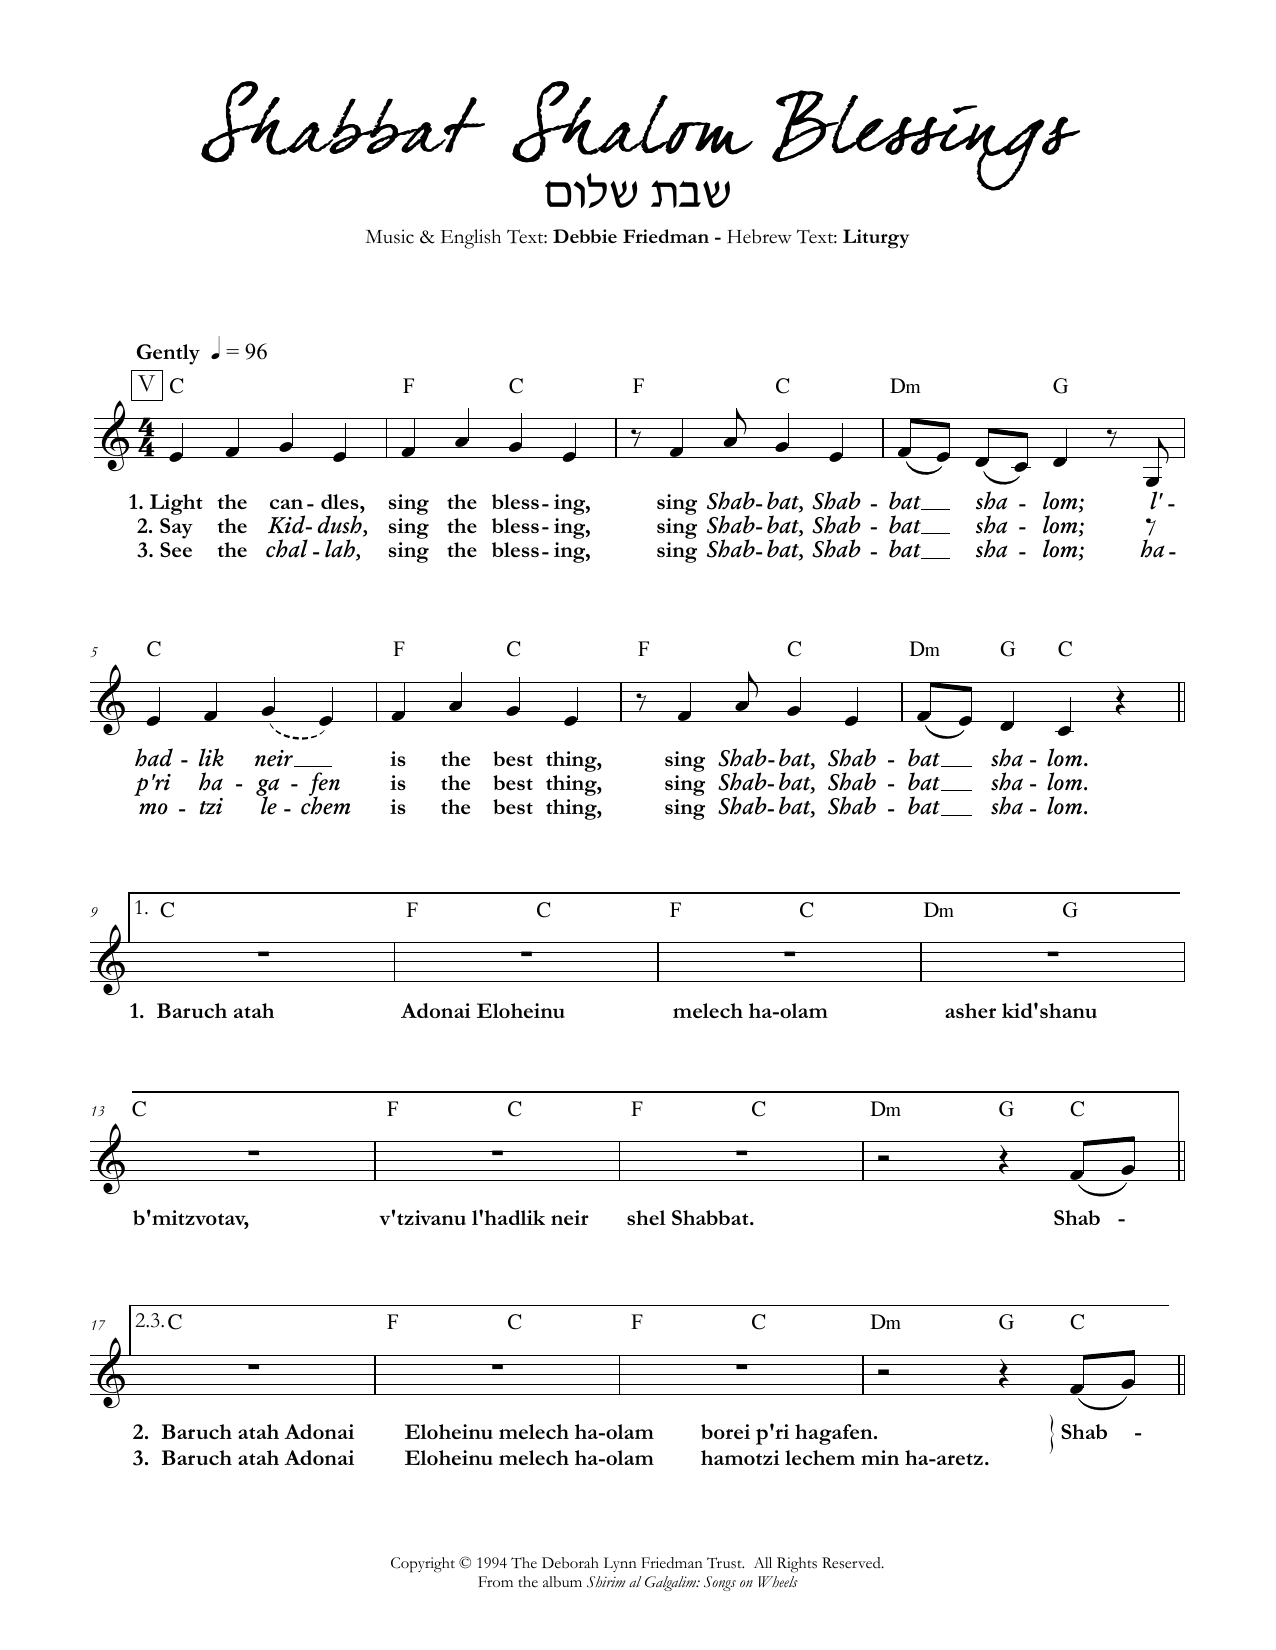 Shabbat Shalom Blessings Sheet Music